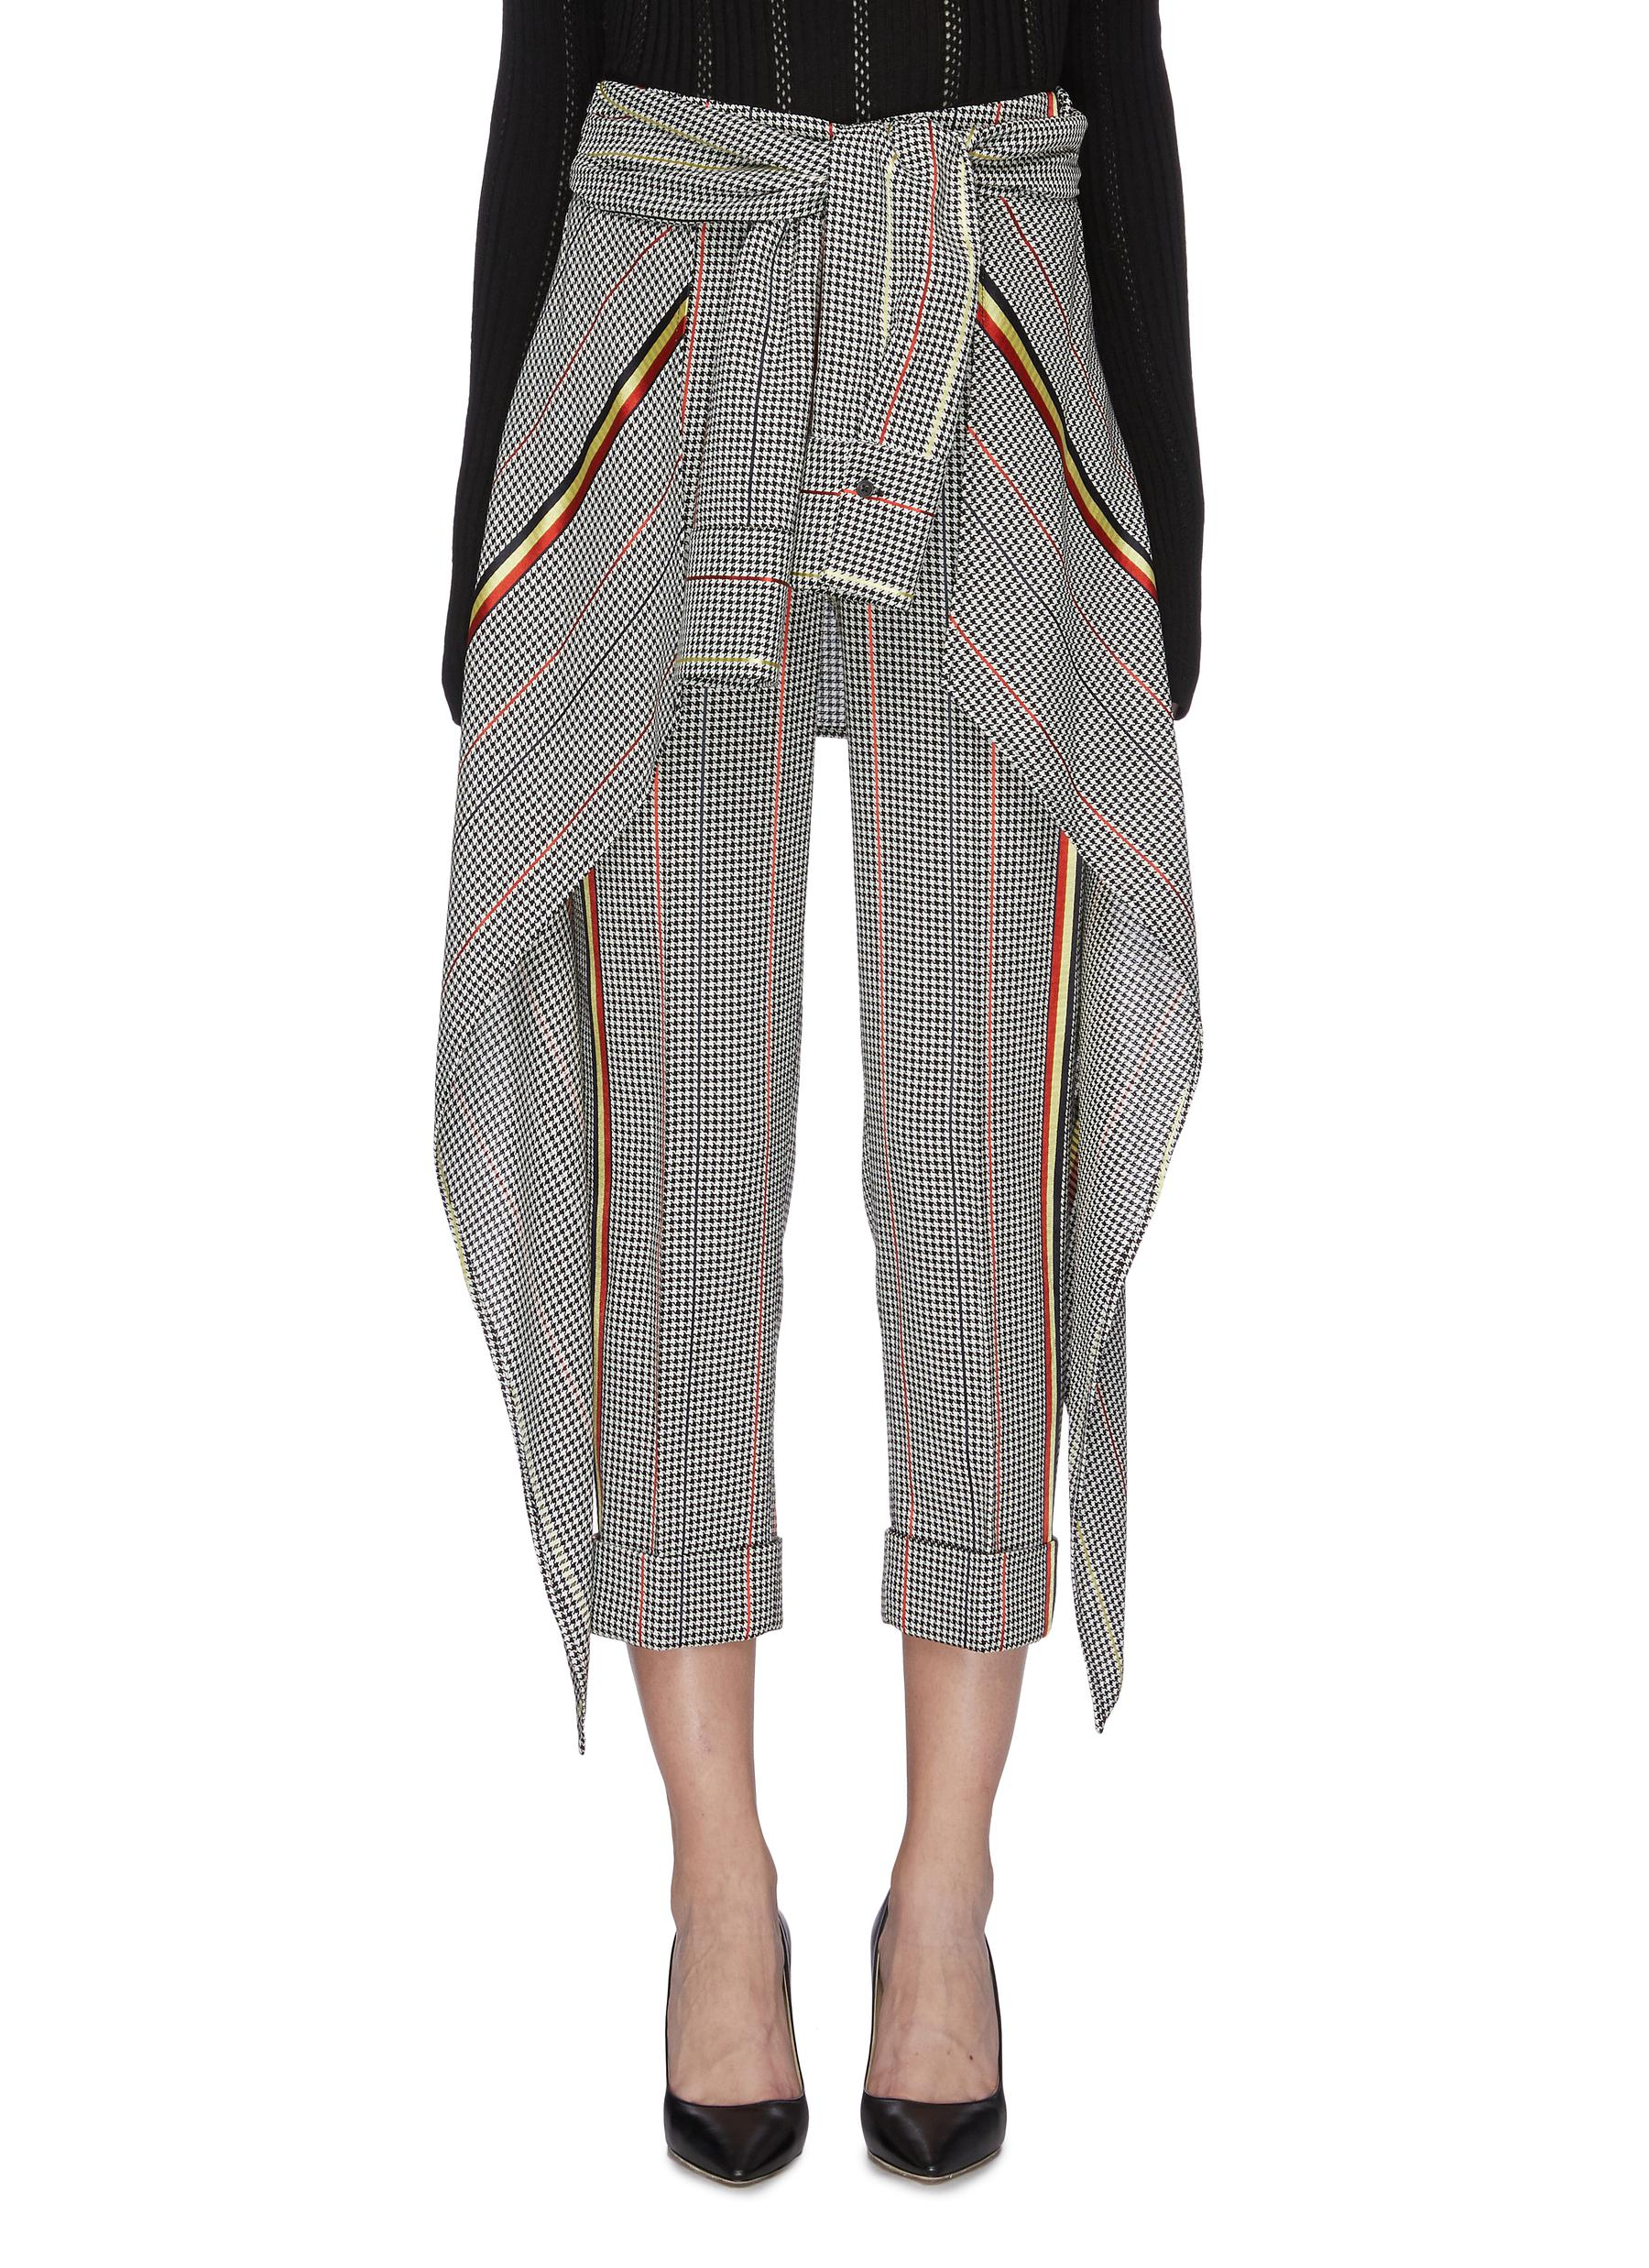 Avedon tie waist drape panel houndstooth check pants by Hellessy